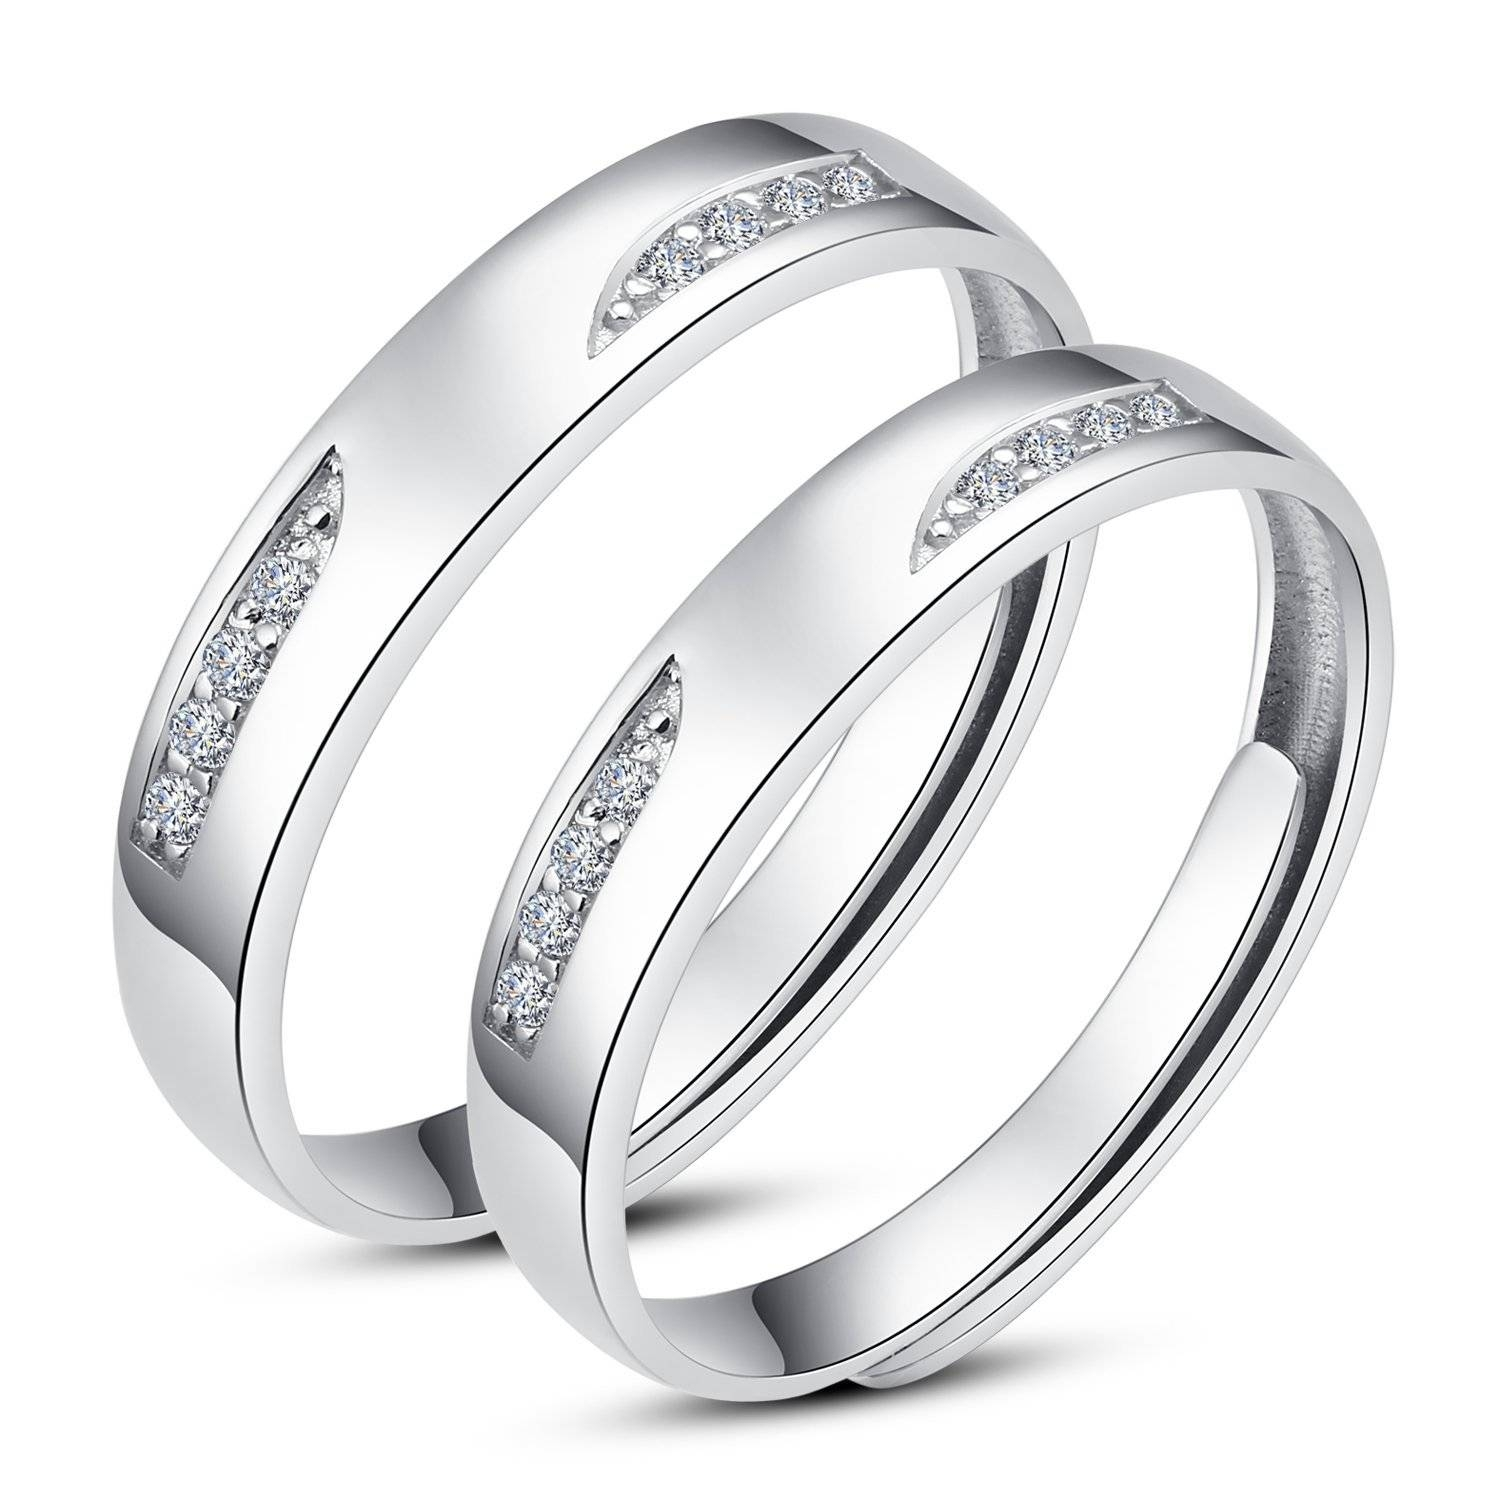 25 Year Wedding Anniversary Rings | Wedding Ideas Throughout Most Current 25 Wedding Anniversary Rings (Gallery 5 of 25)